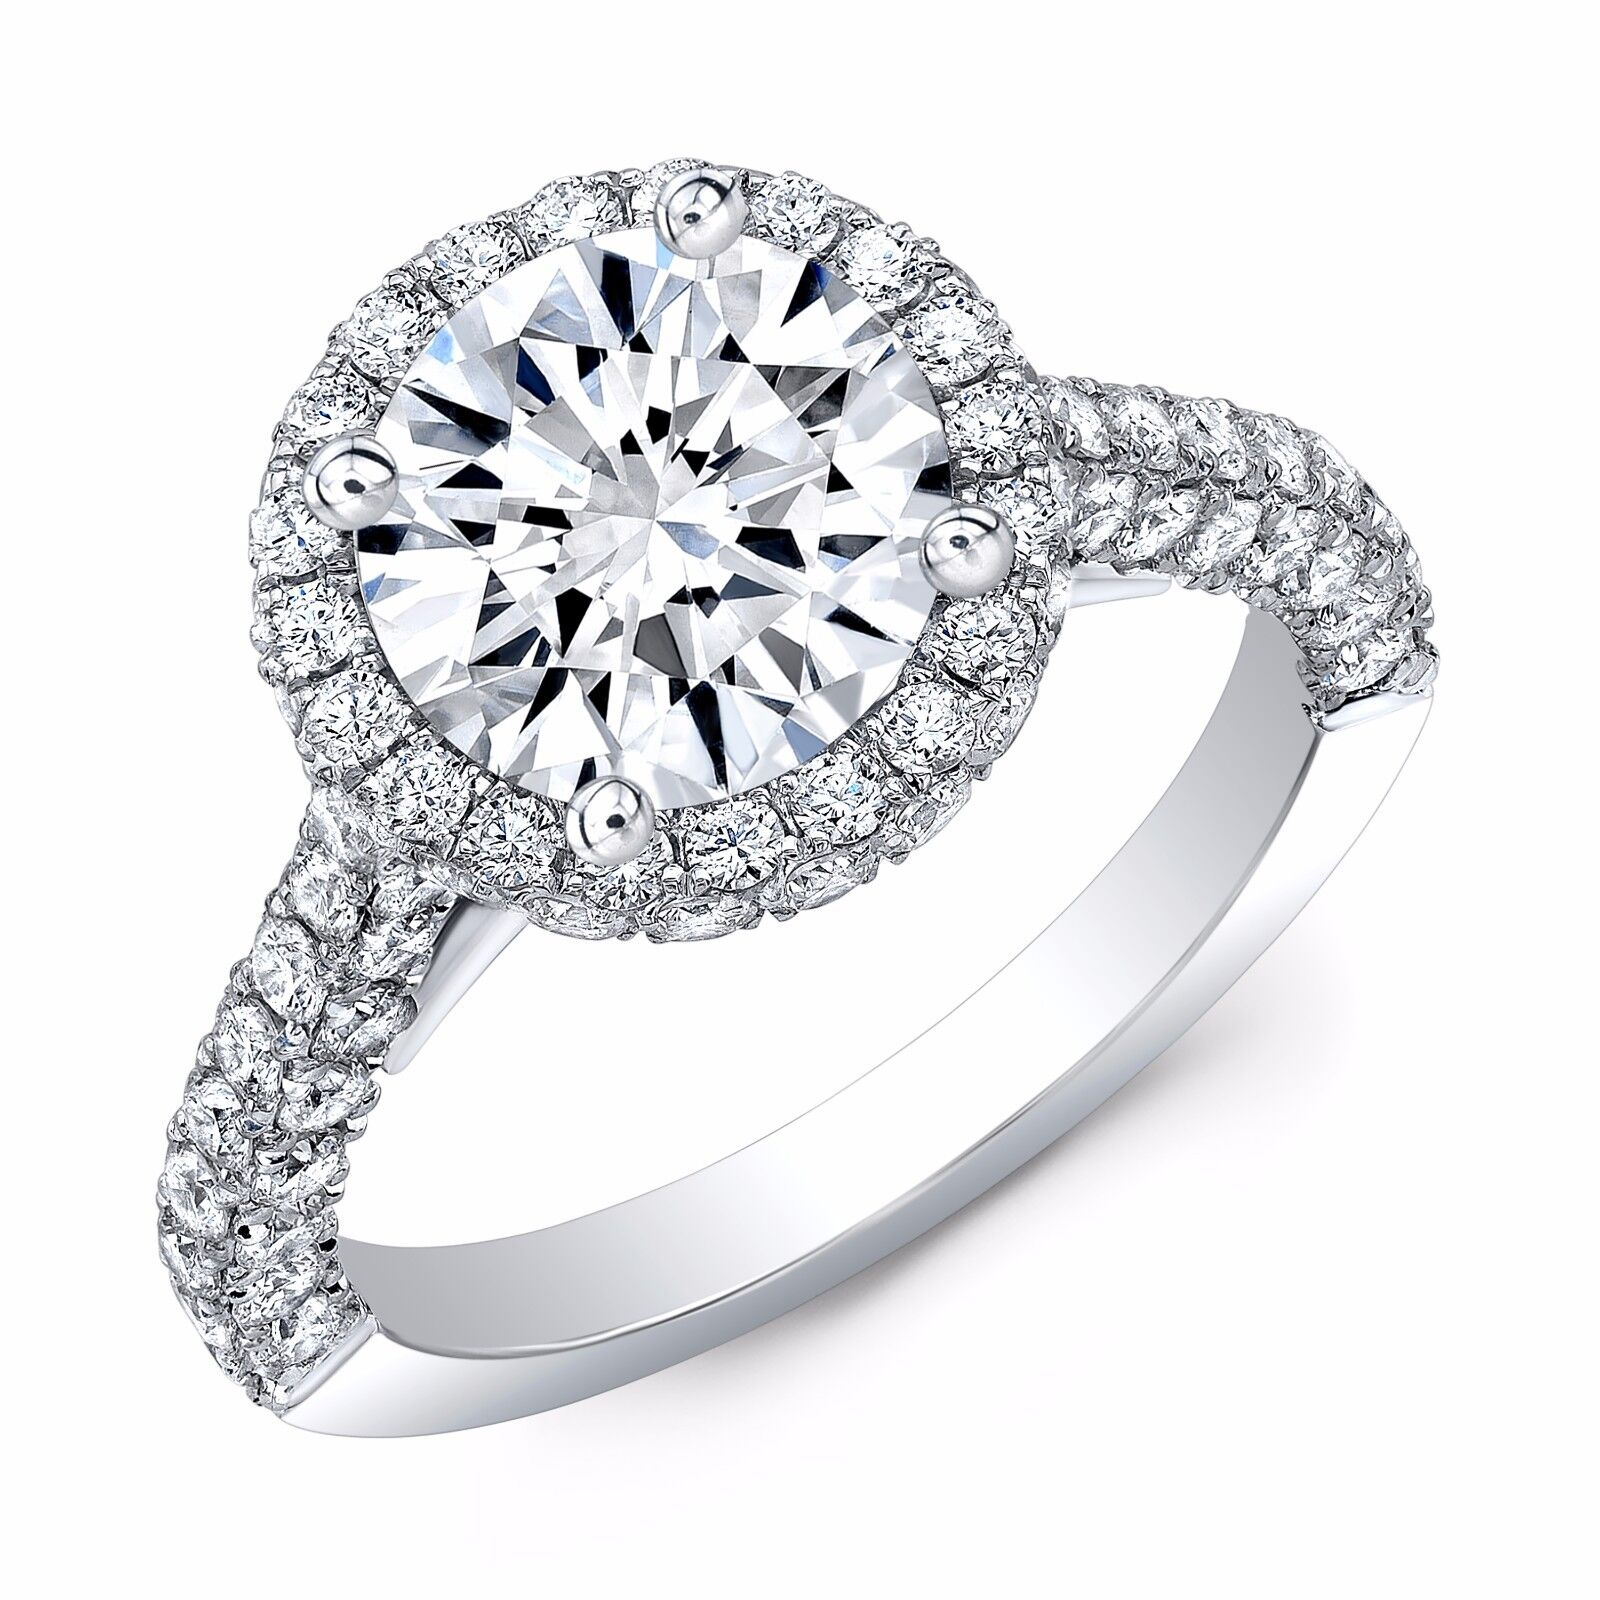 2.50 Ct Round Brilliant Cut Diamond 3-Row Pave Halo Engagement Ring G,SI1 GIA